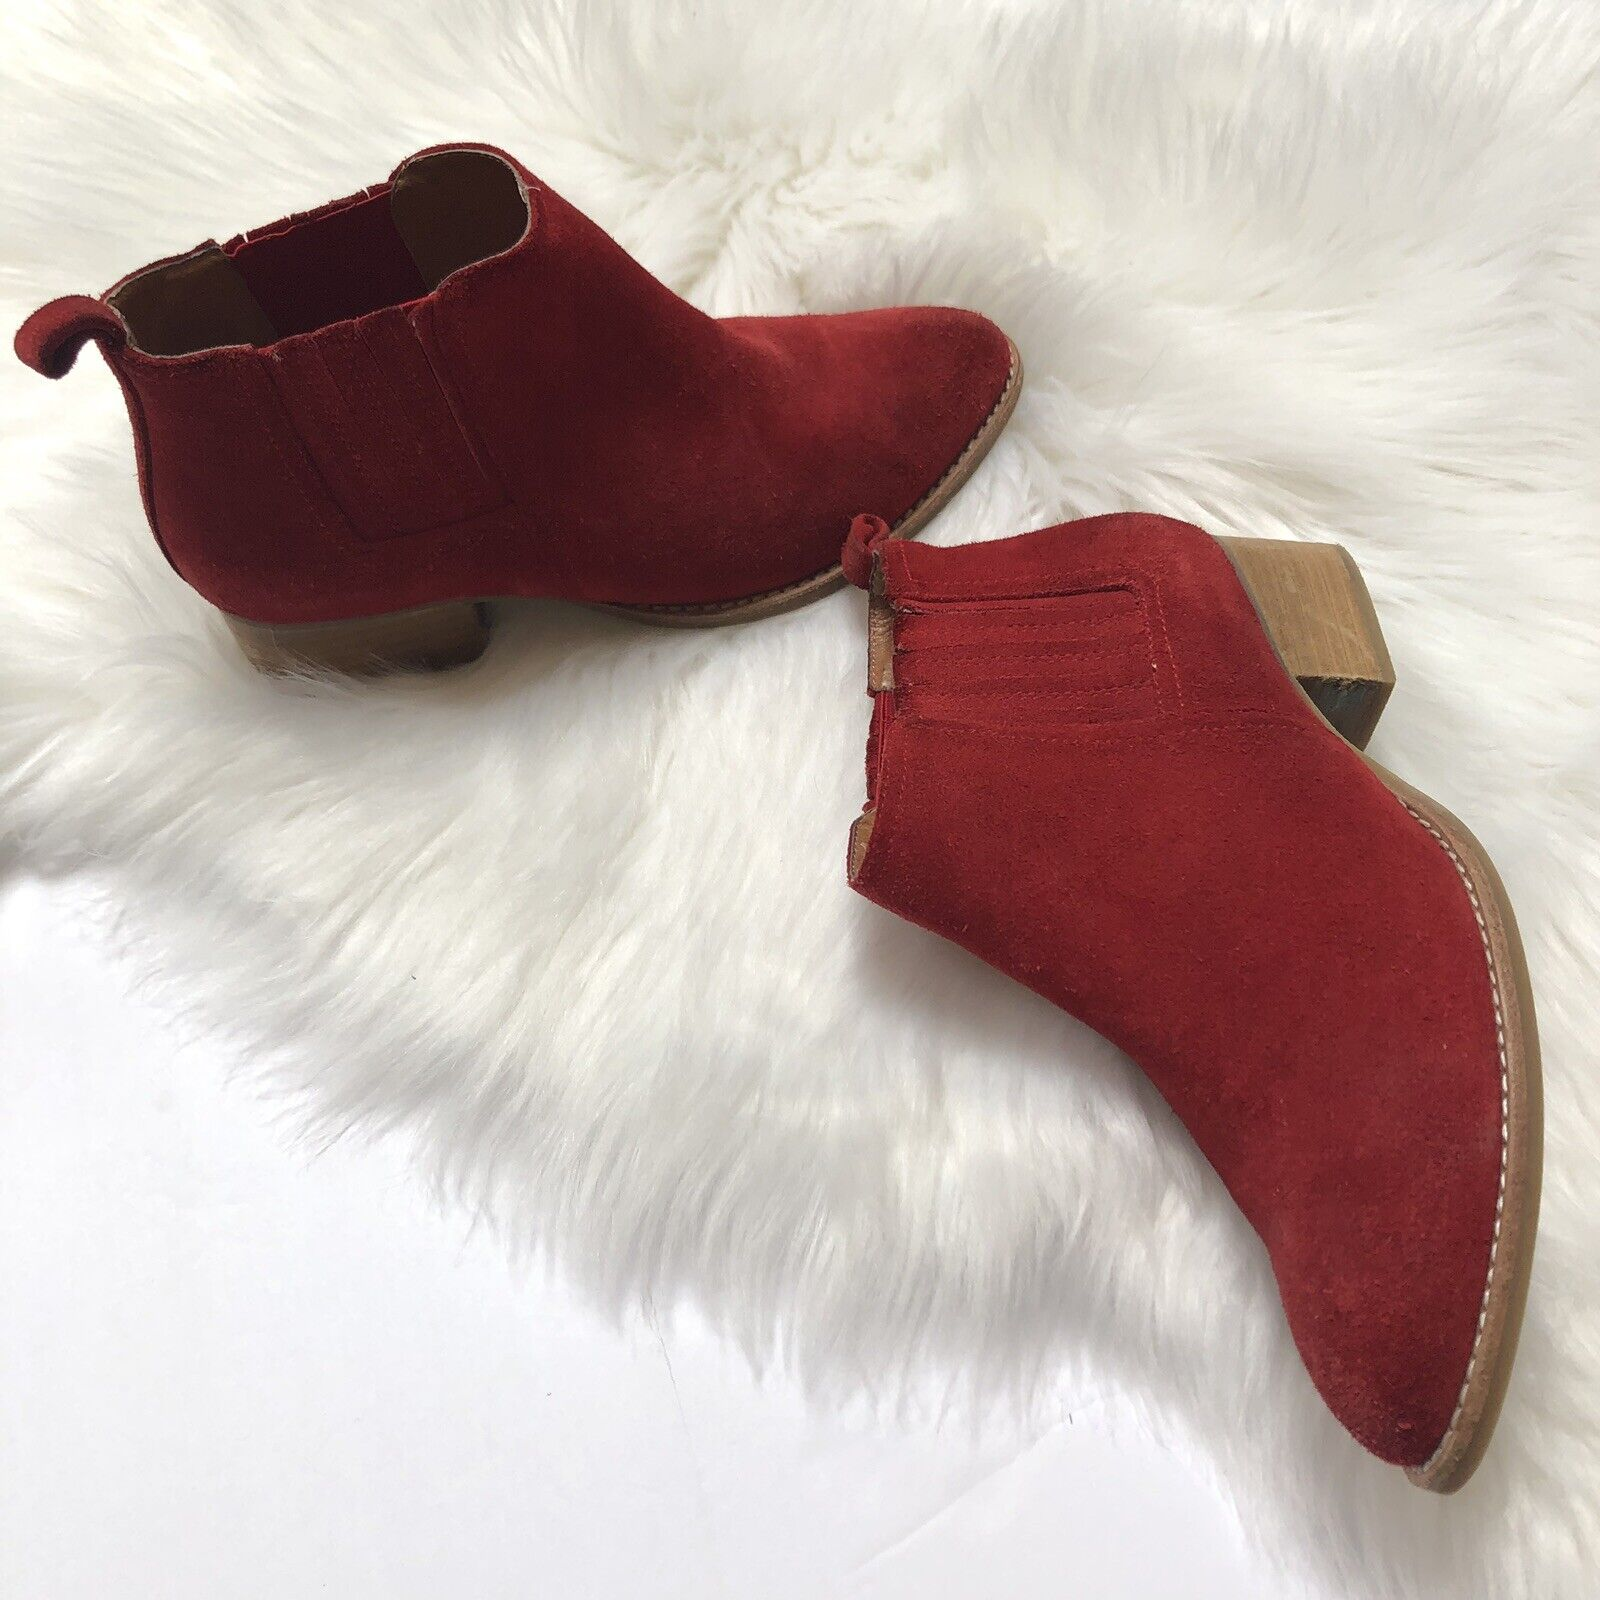 EUC Jeffrey Campbell Western Metcalf Ankle Booties Red Suede Size 6.5